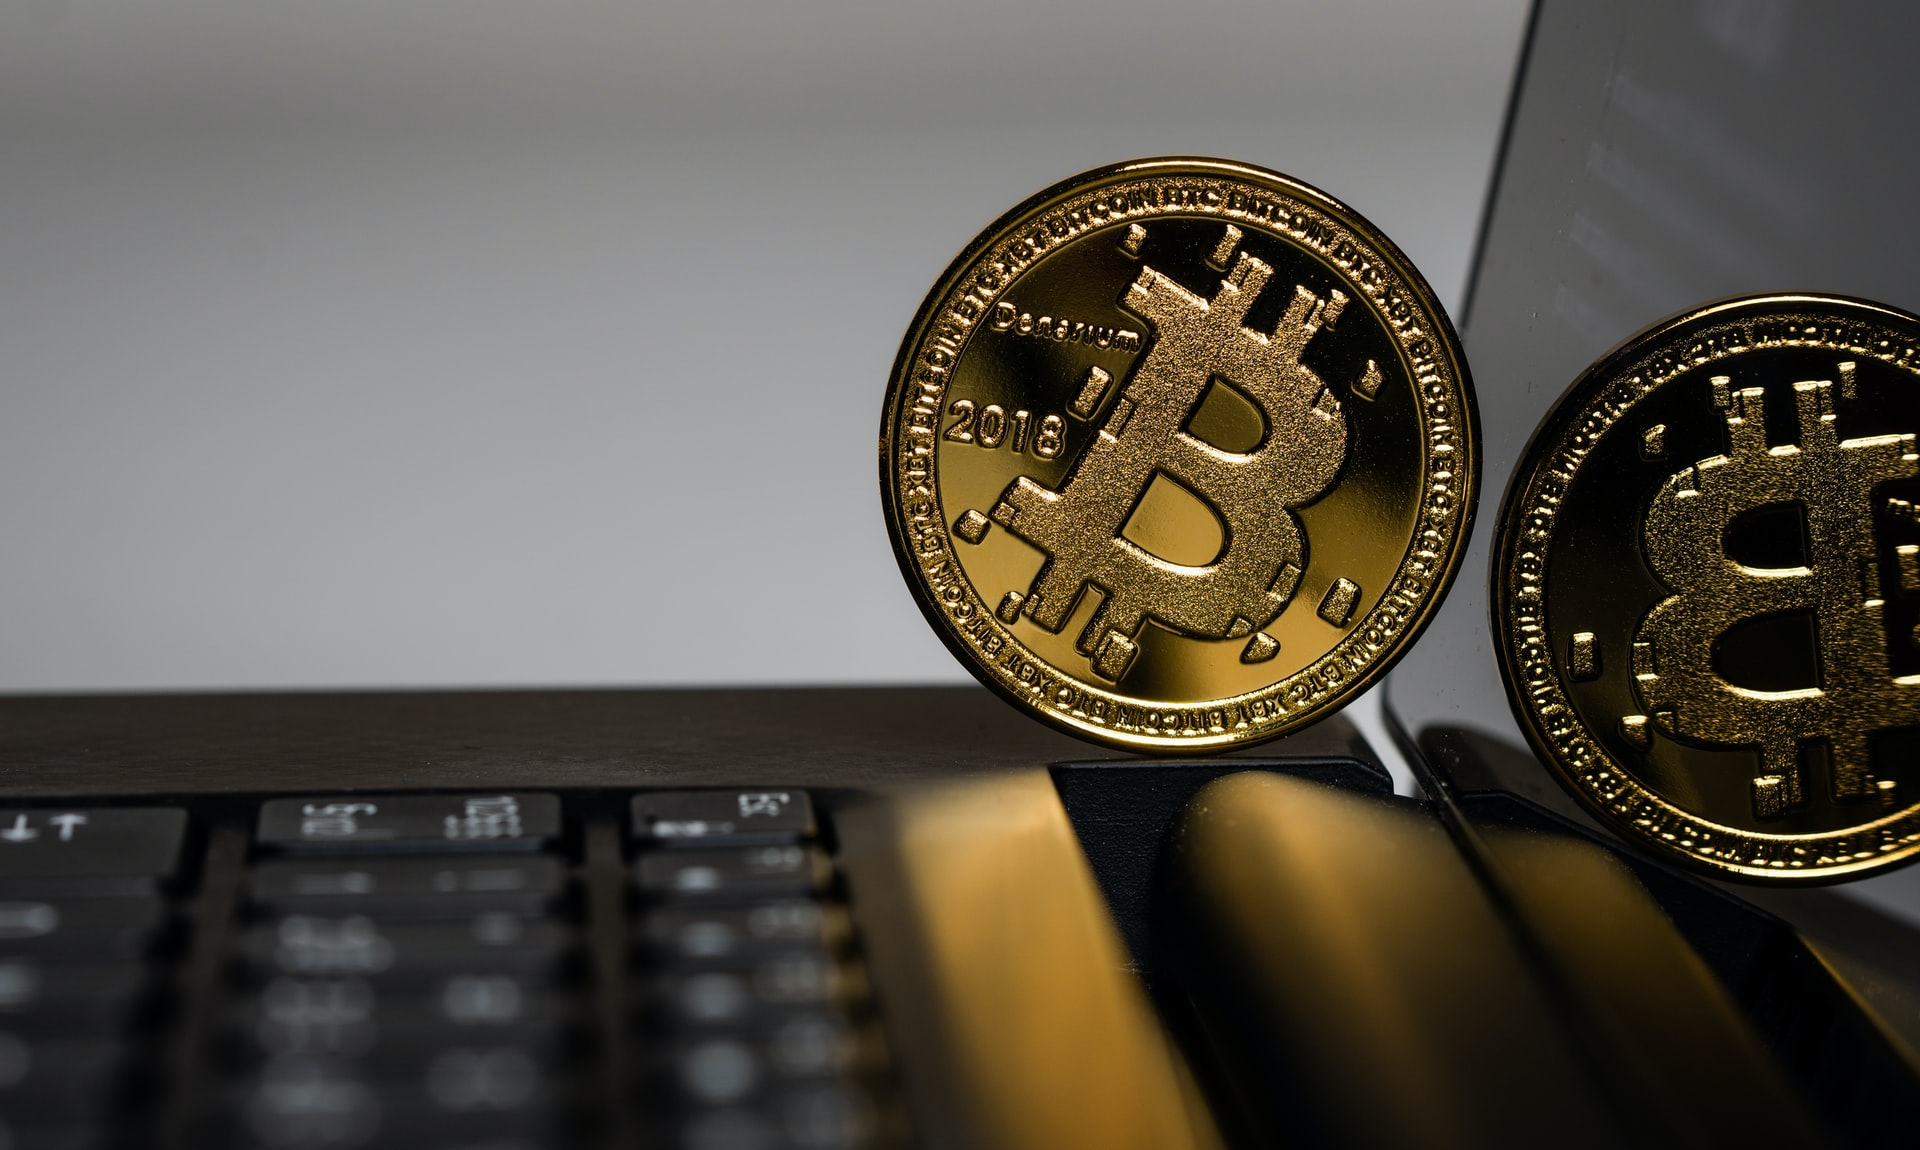 Bitcoin Users Excited Header Image